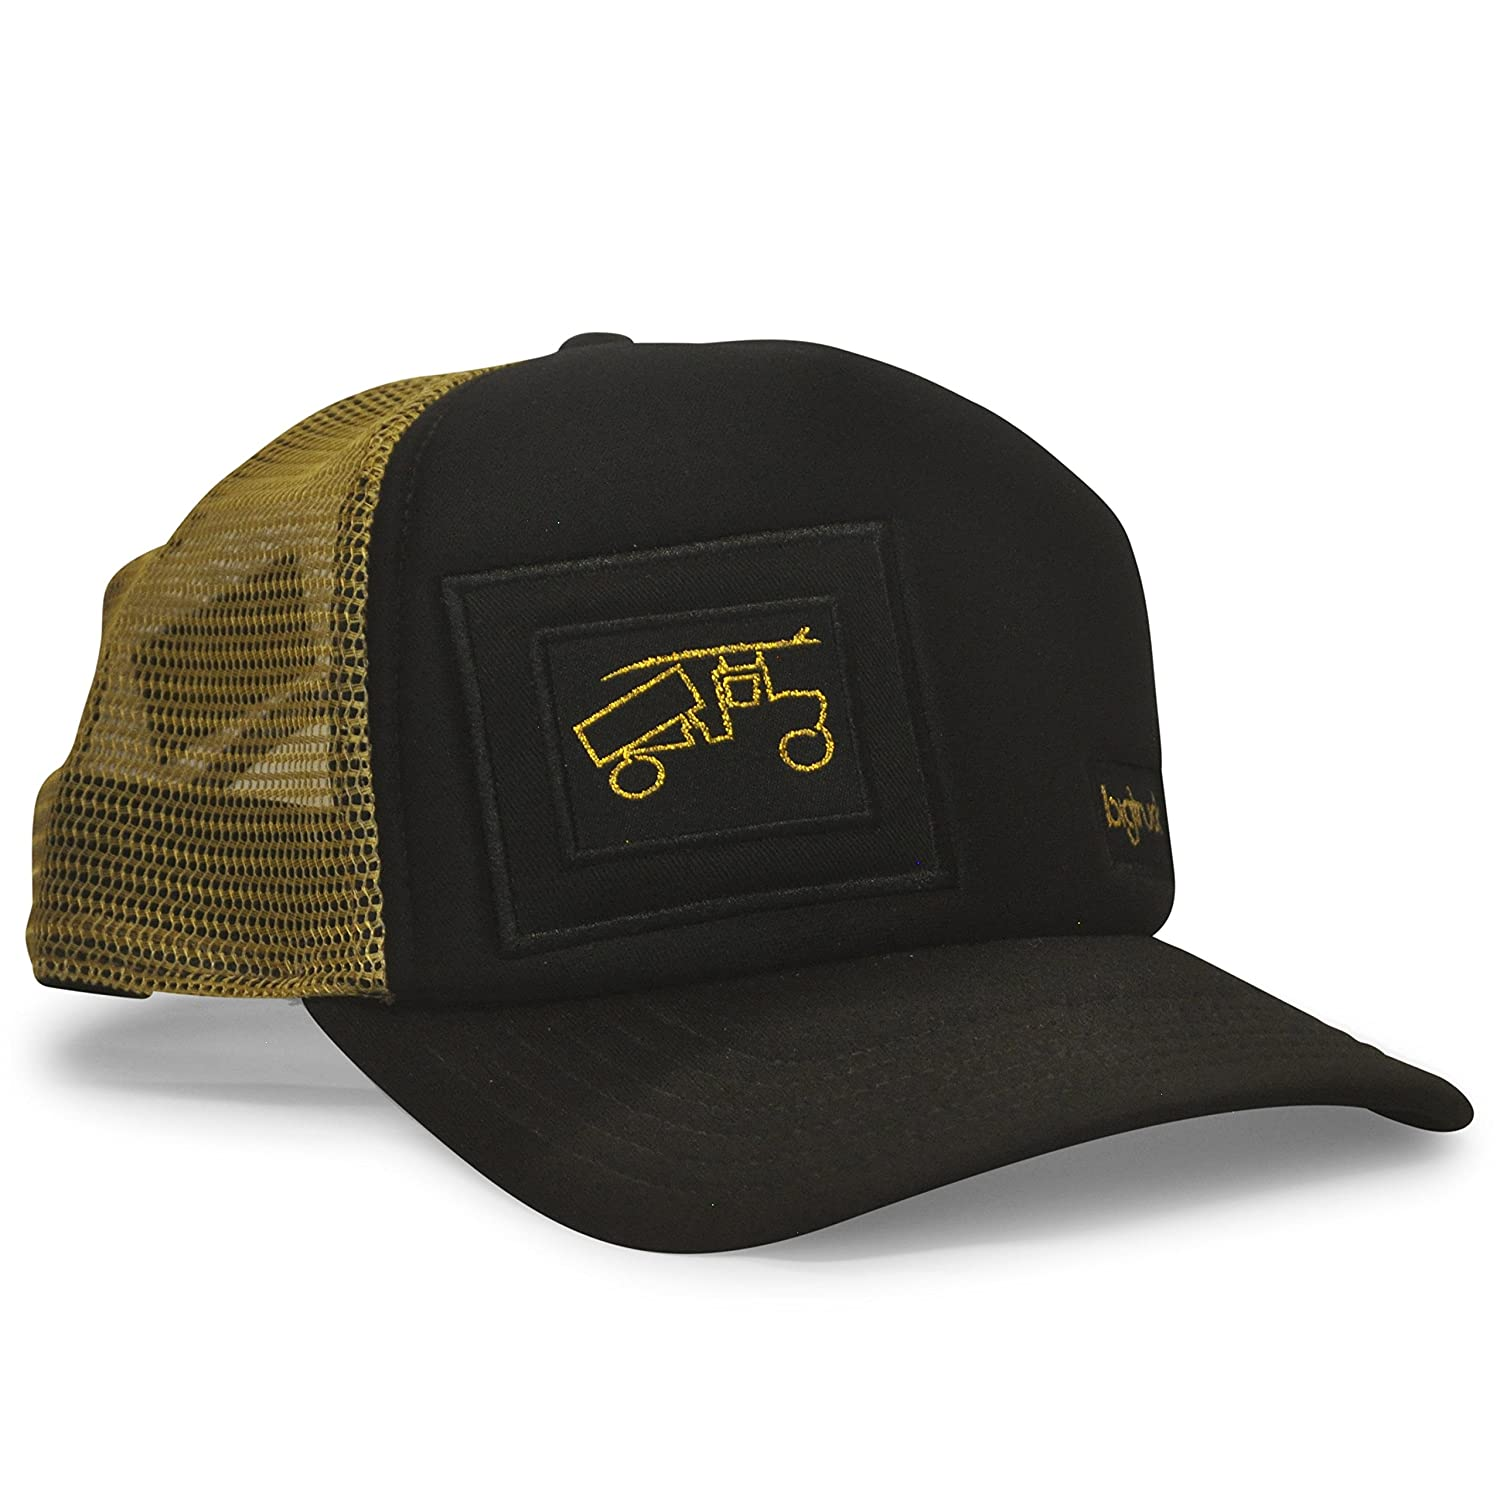 aba1f581 bigtruck: seeking fun and adventure in everything we do. high profile  trucker hat adjustable snapback for the perfect fit